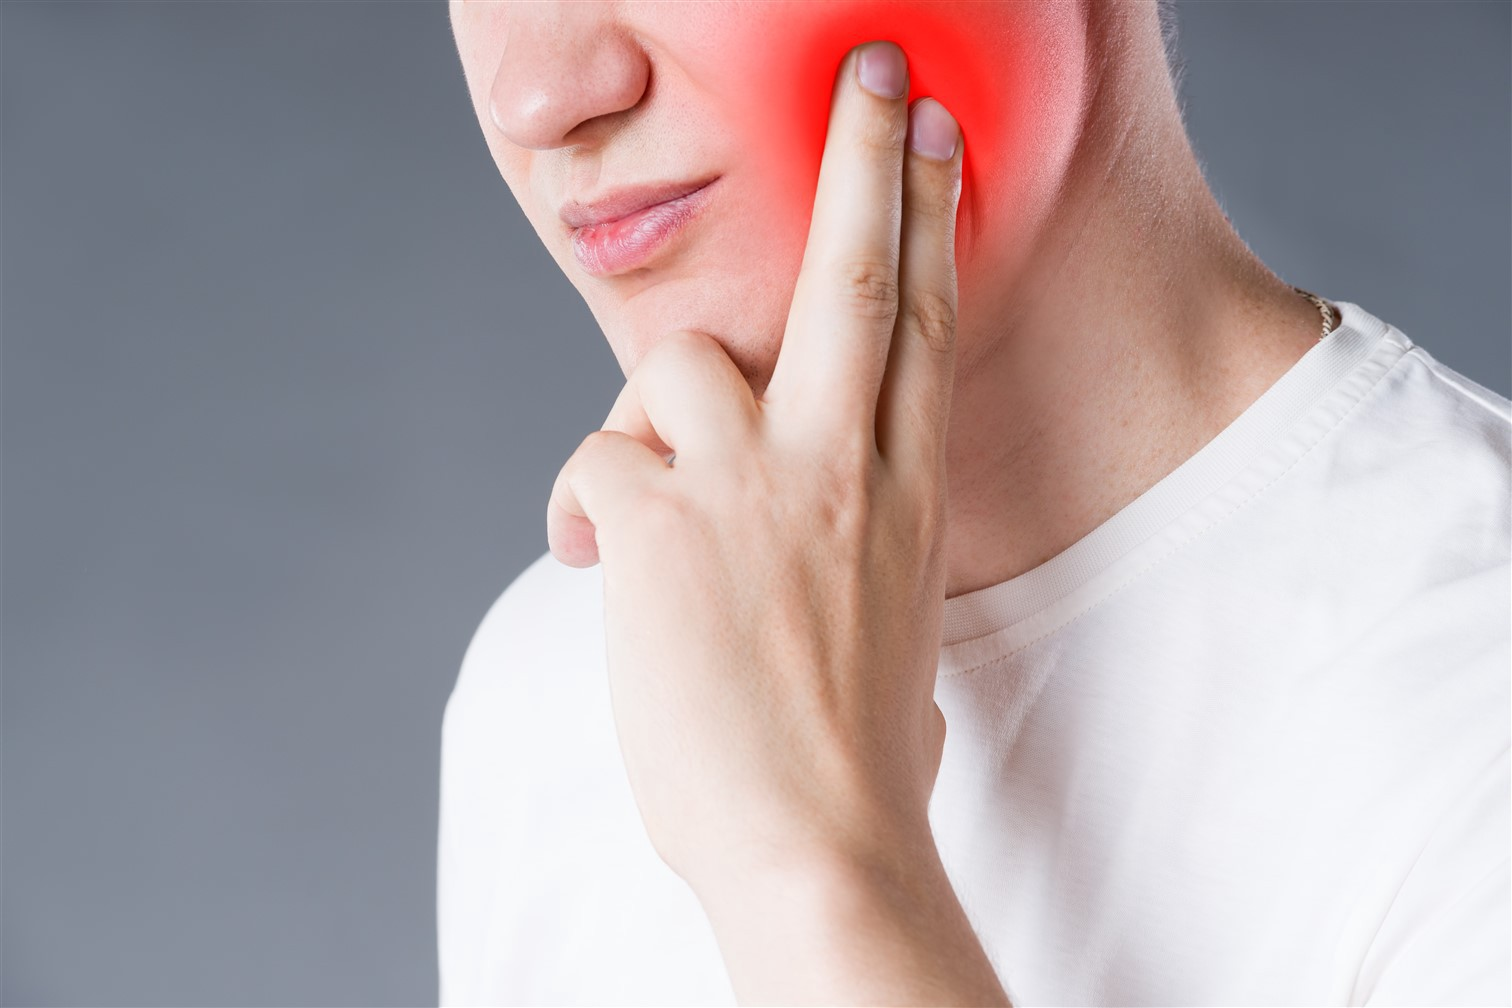 What To Eat After Wisdom Teeth Removal Precautions After Tooth Extraction By Dr Sumit Sehgal General Dentist Radiant Star Dental Services Medium